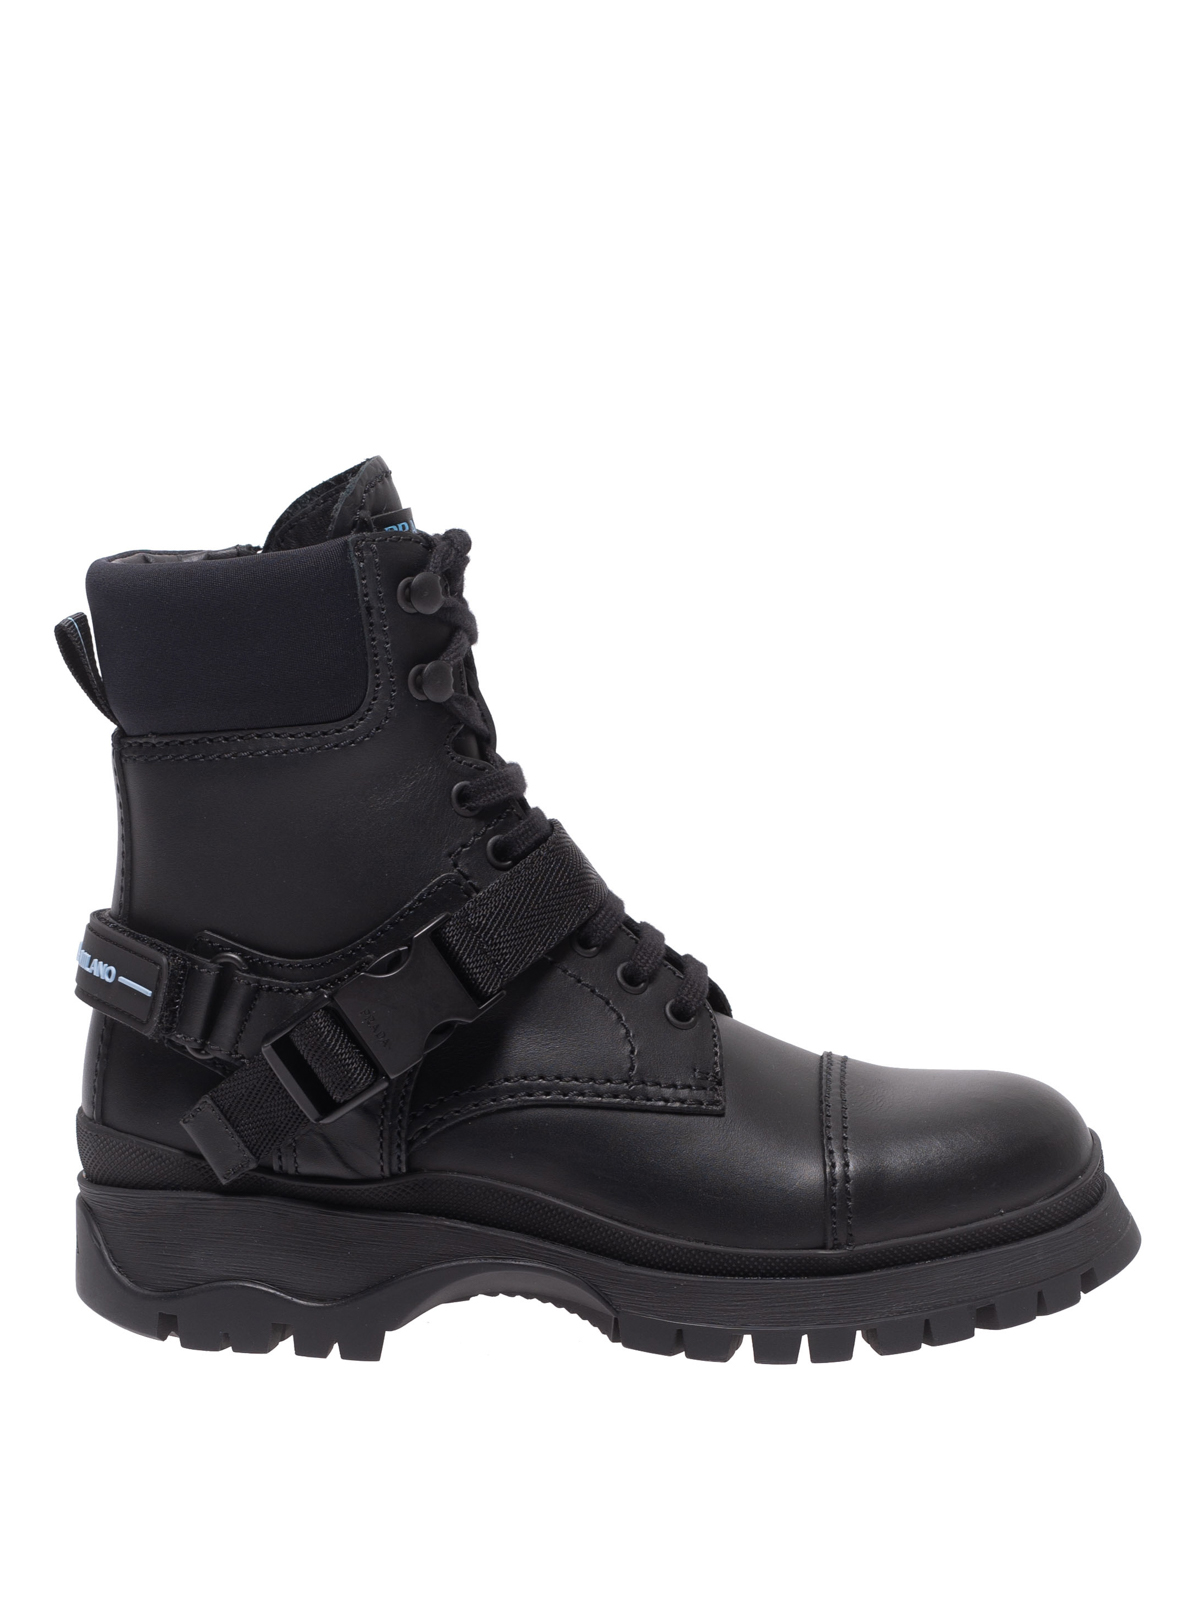 save up to 60% free delivery sale uk Prada - Buckle strap calf leather ankle boots - ankle boots ...